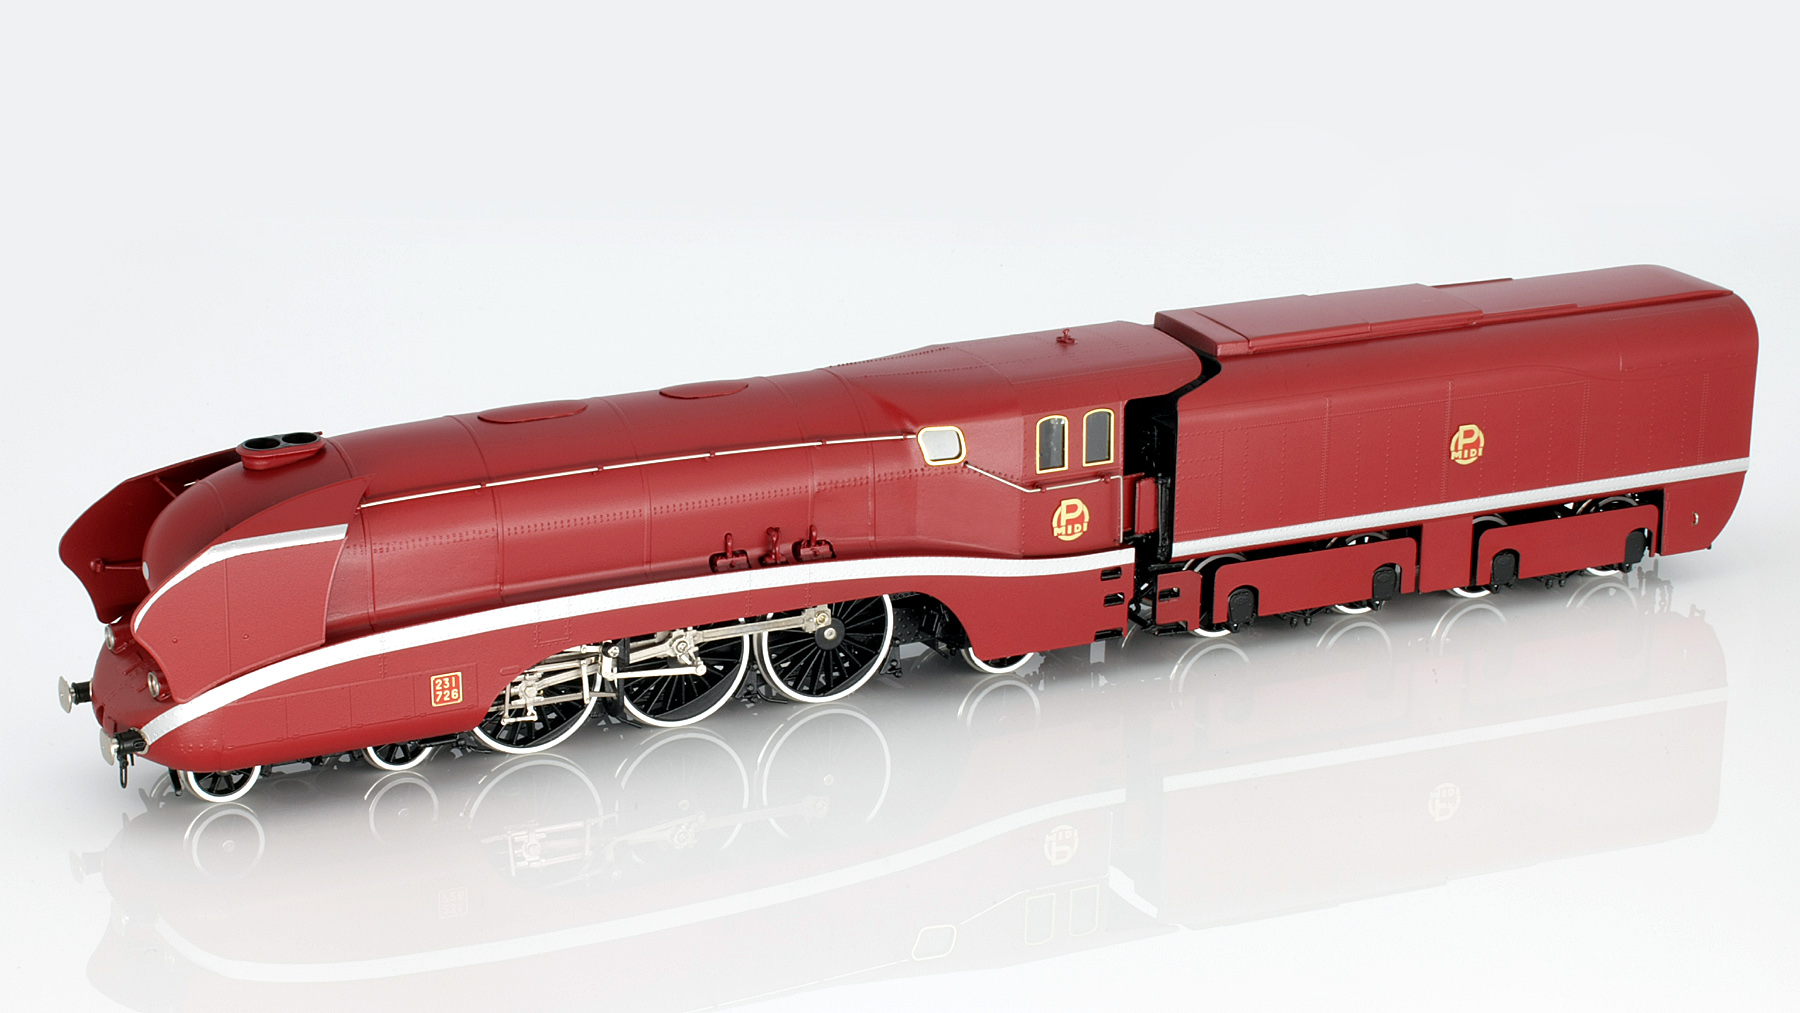 P.O. MIDI 231-726 Streamlined Steam Locomotive HO-011/2